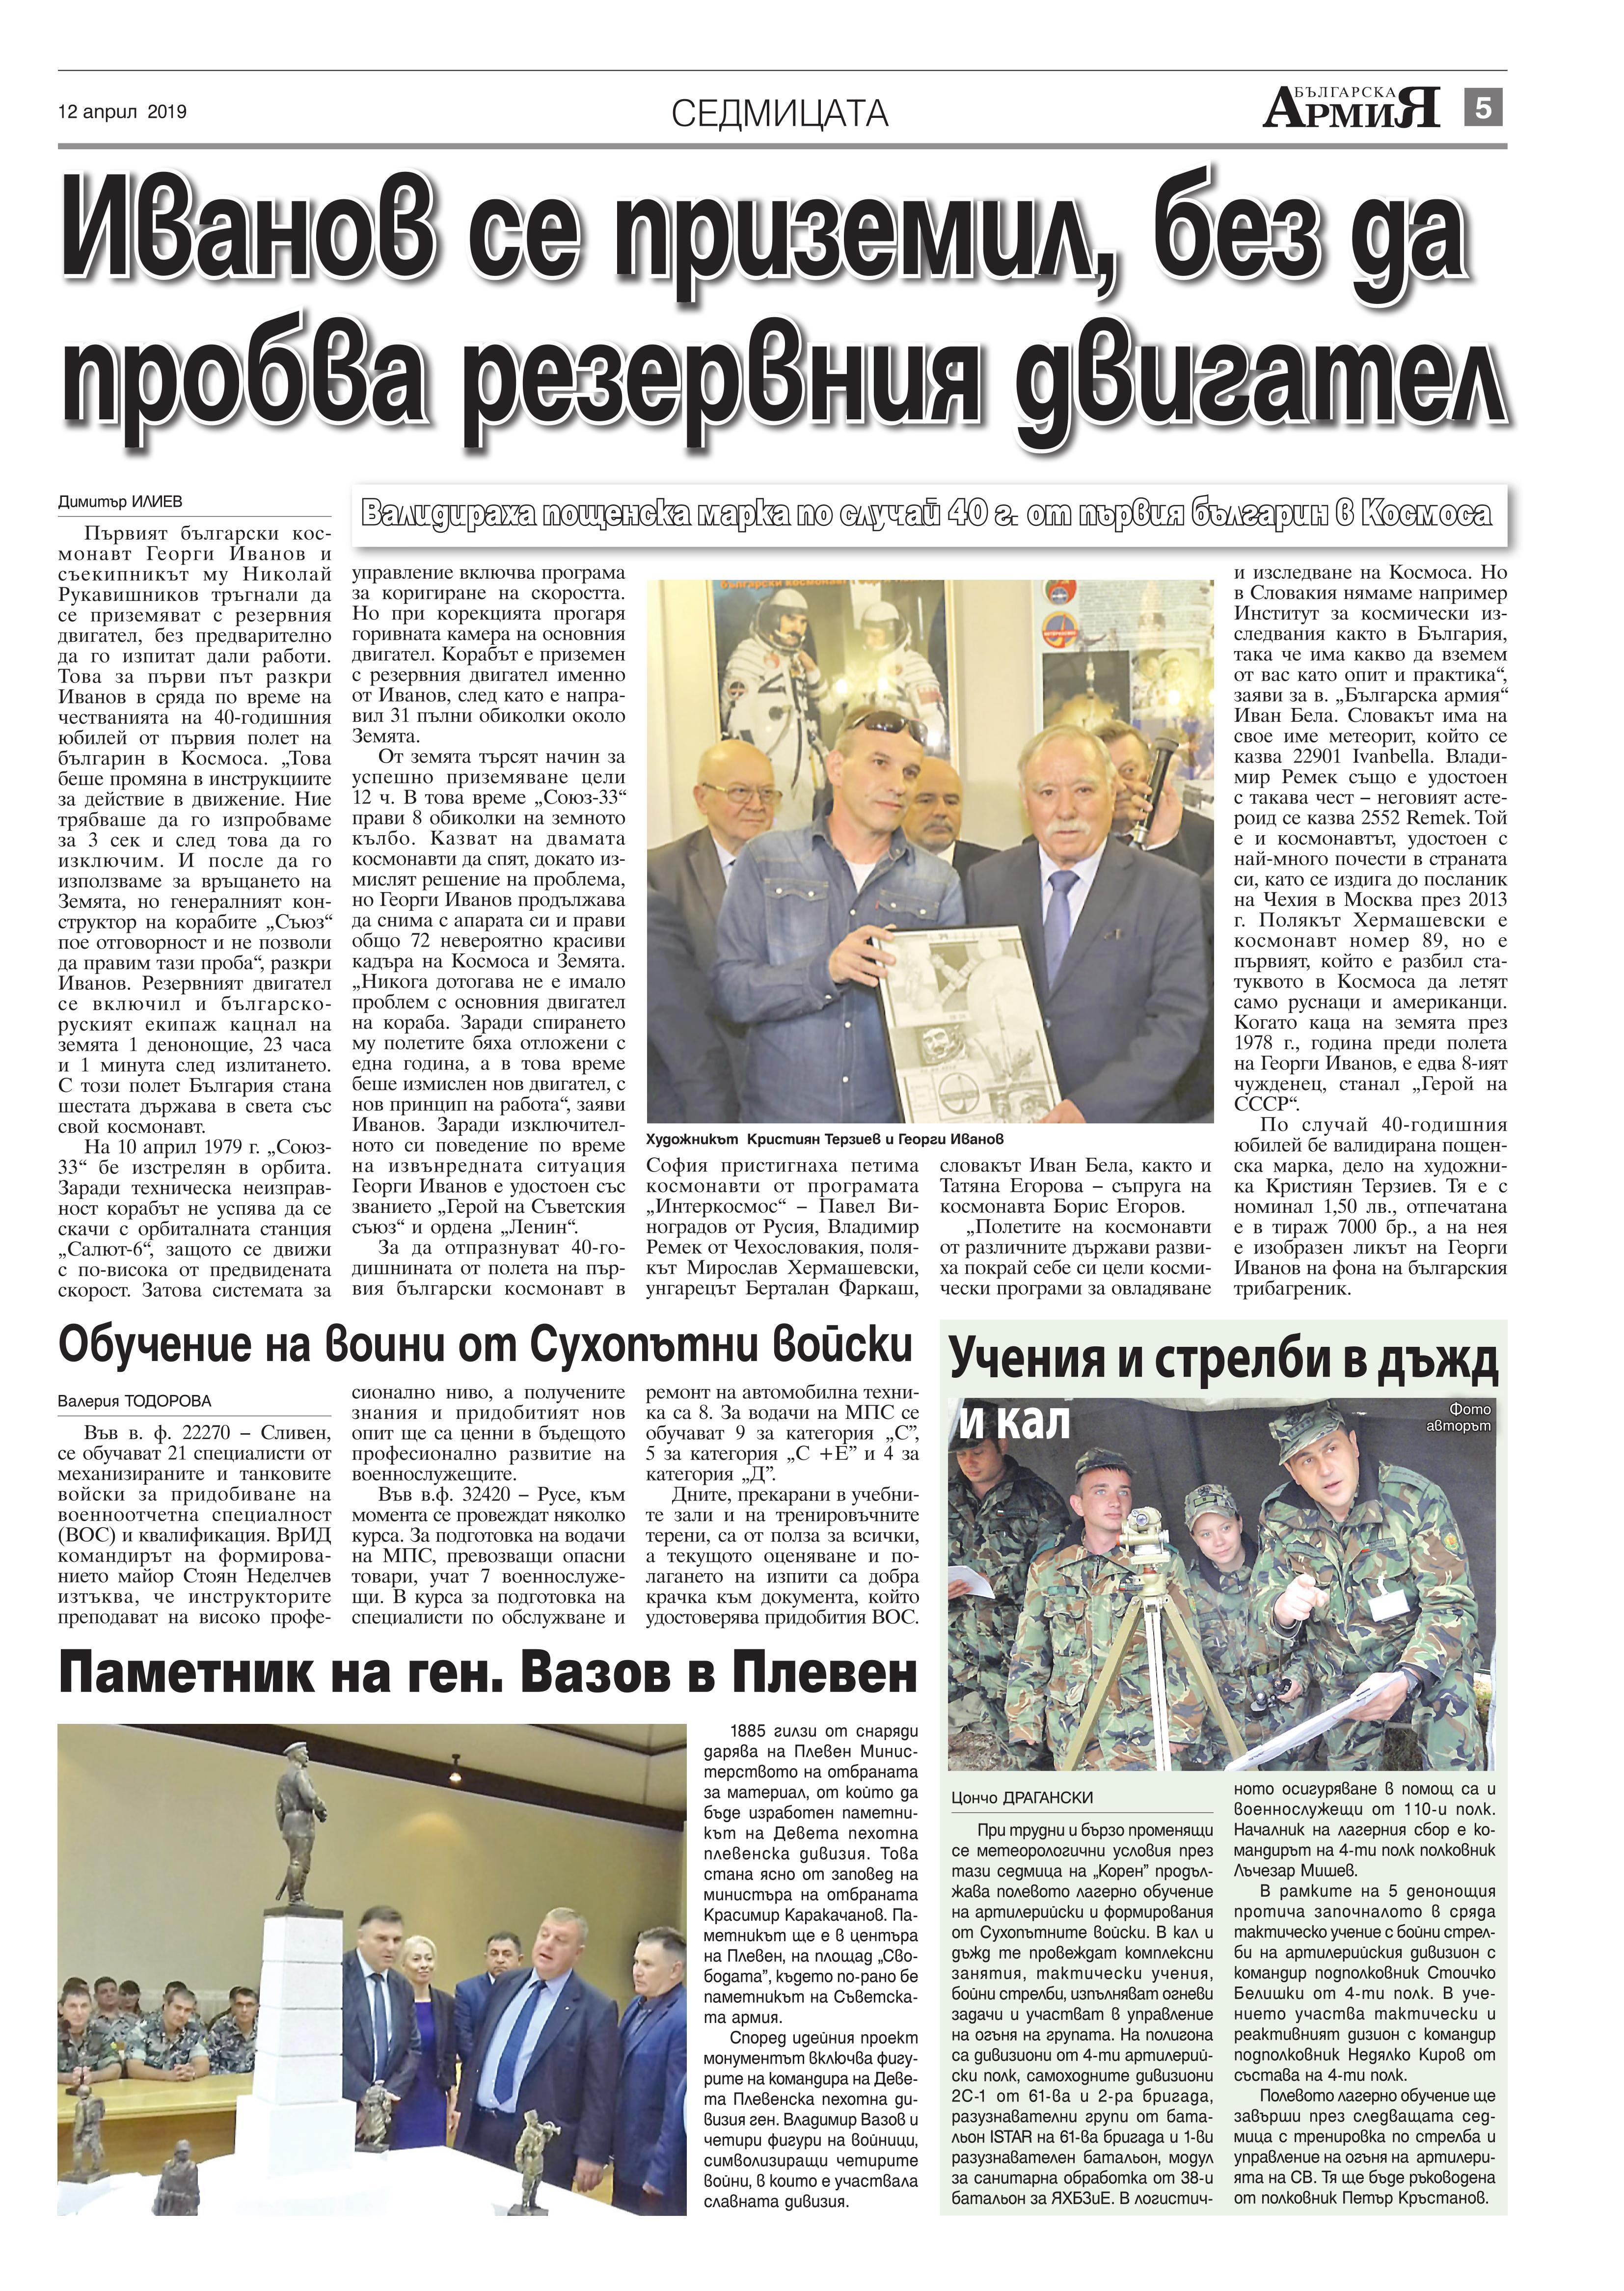 https://armymedia.bg/wp-content/uploads/2015/06/05.page1_-88.jpg